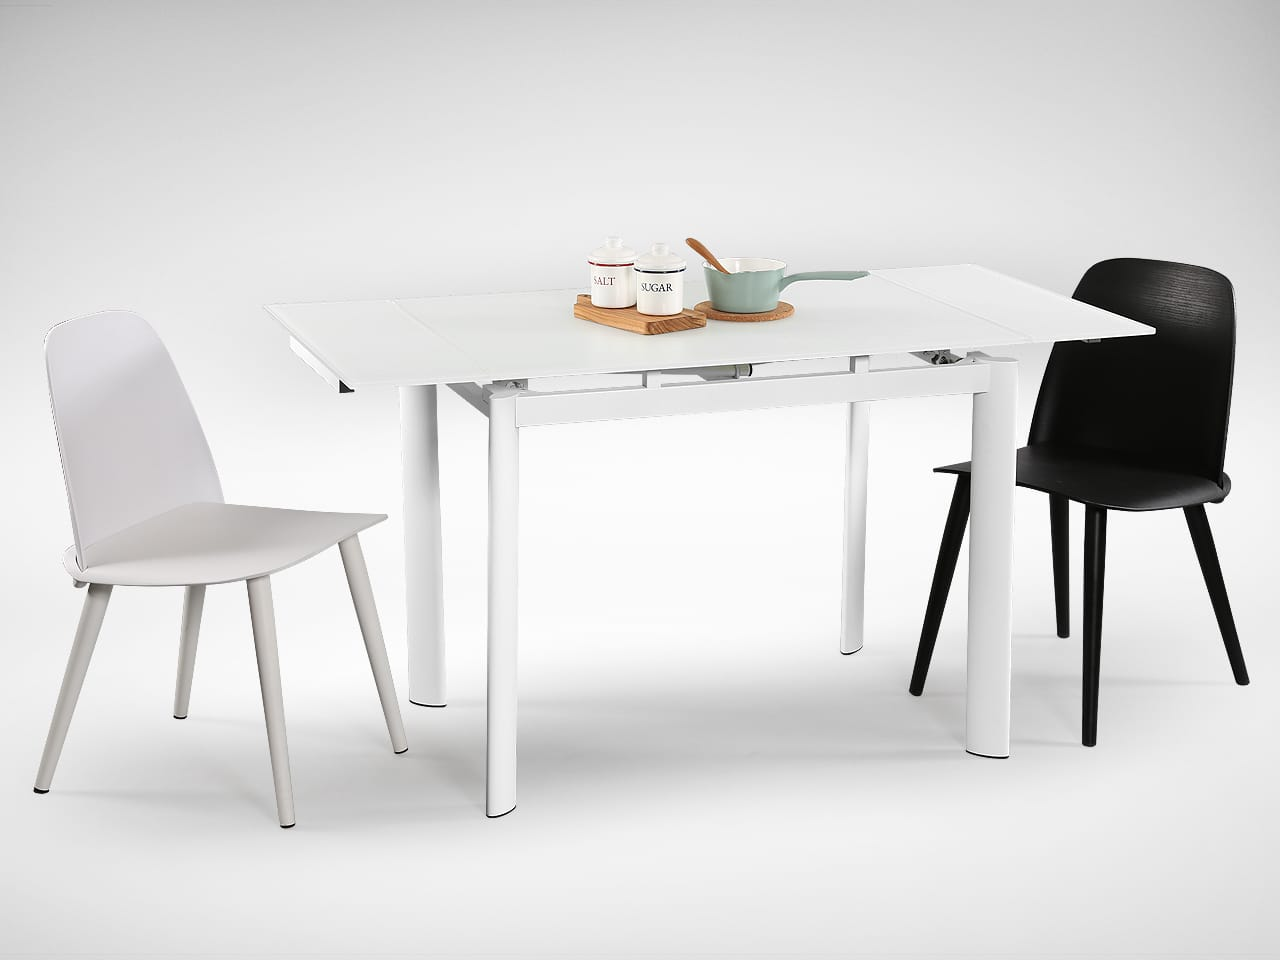 [Vovo Extendable Table & Troy Chair]